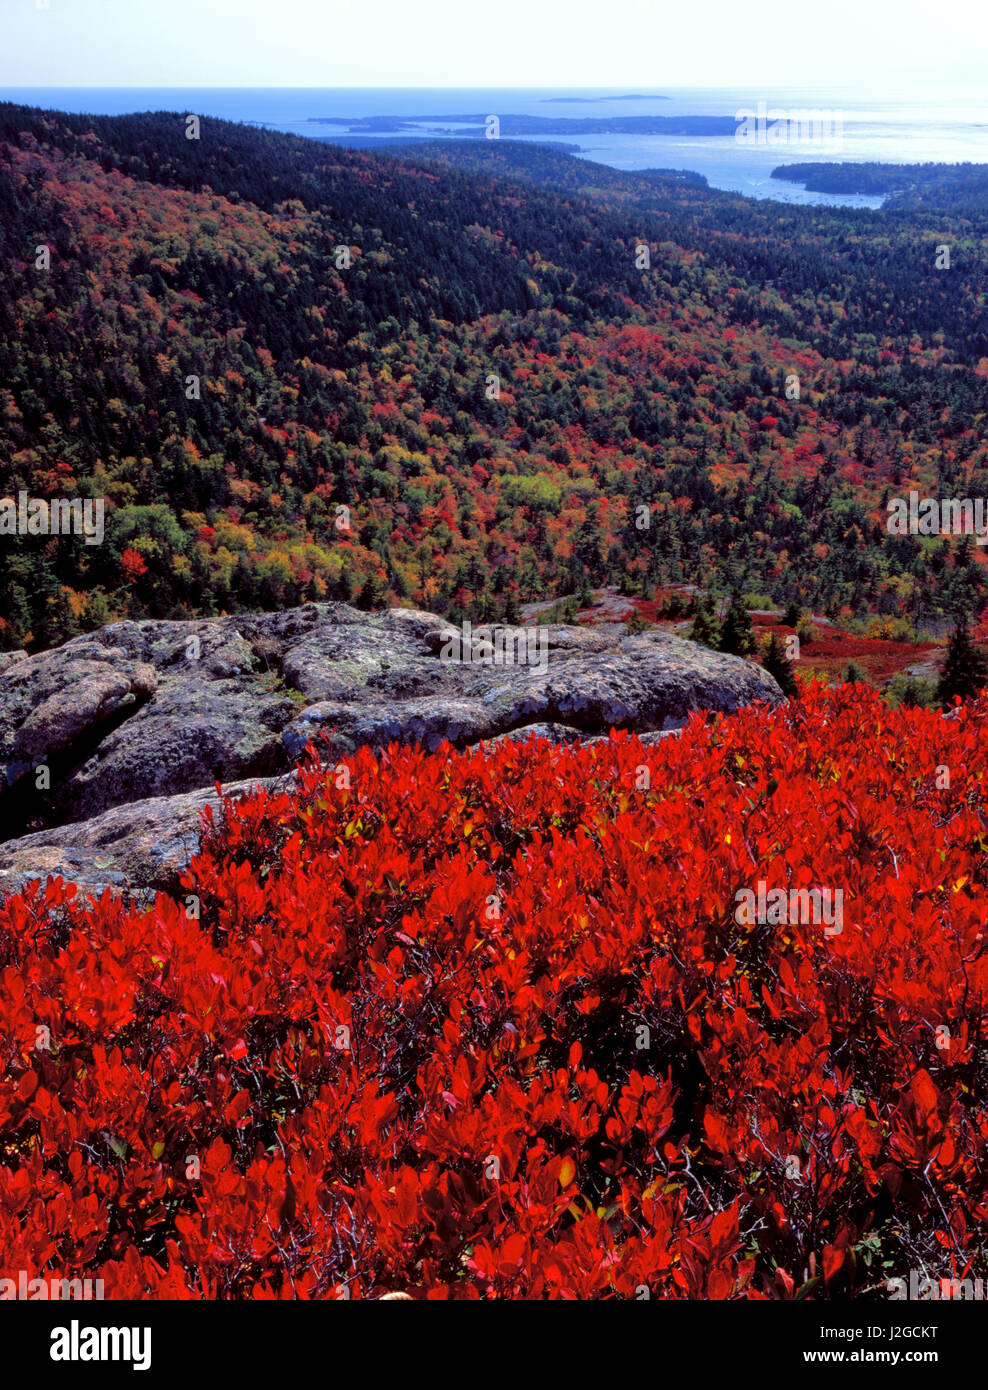 Acadia National Park, Maine. USA. Scarlet foliage of black huckleberry (Gaylussacia baccata) above forest in autumn. - Stock Image